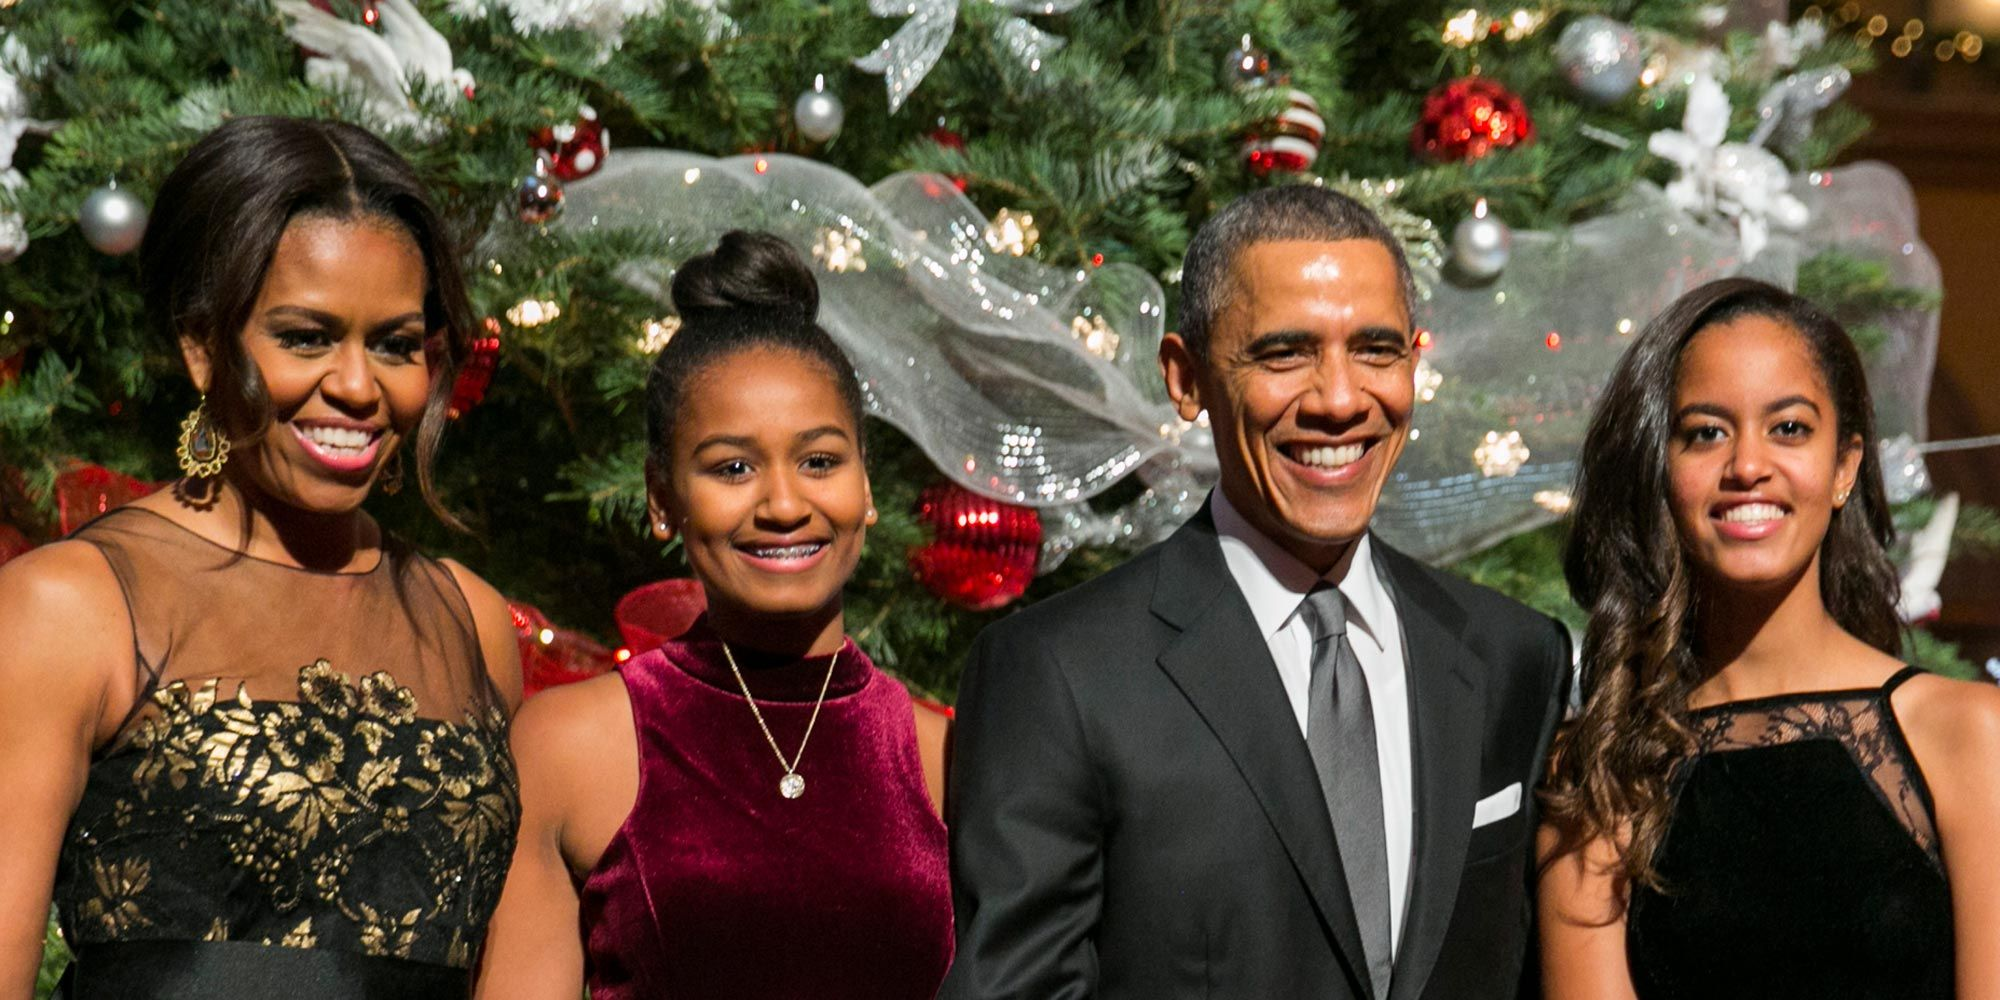 Obama Family Sends Out White House Christmas Card for 2016 - What ...